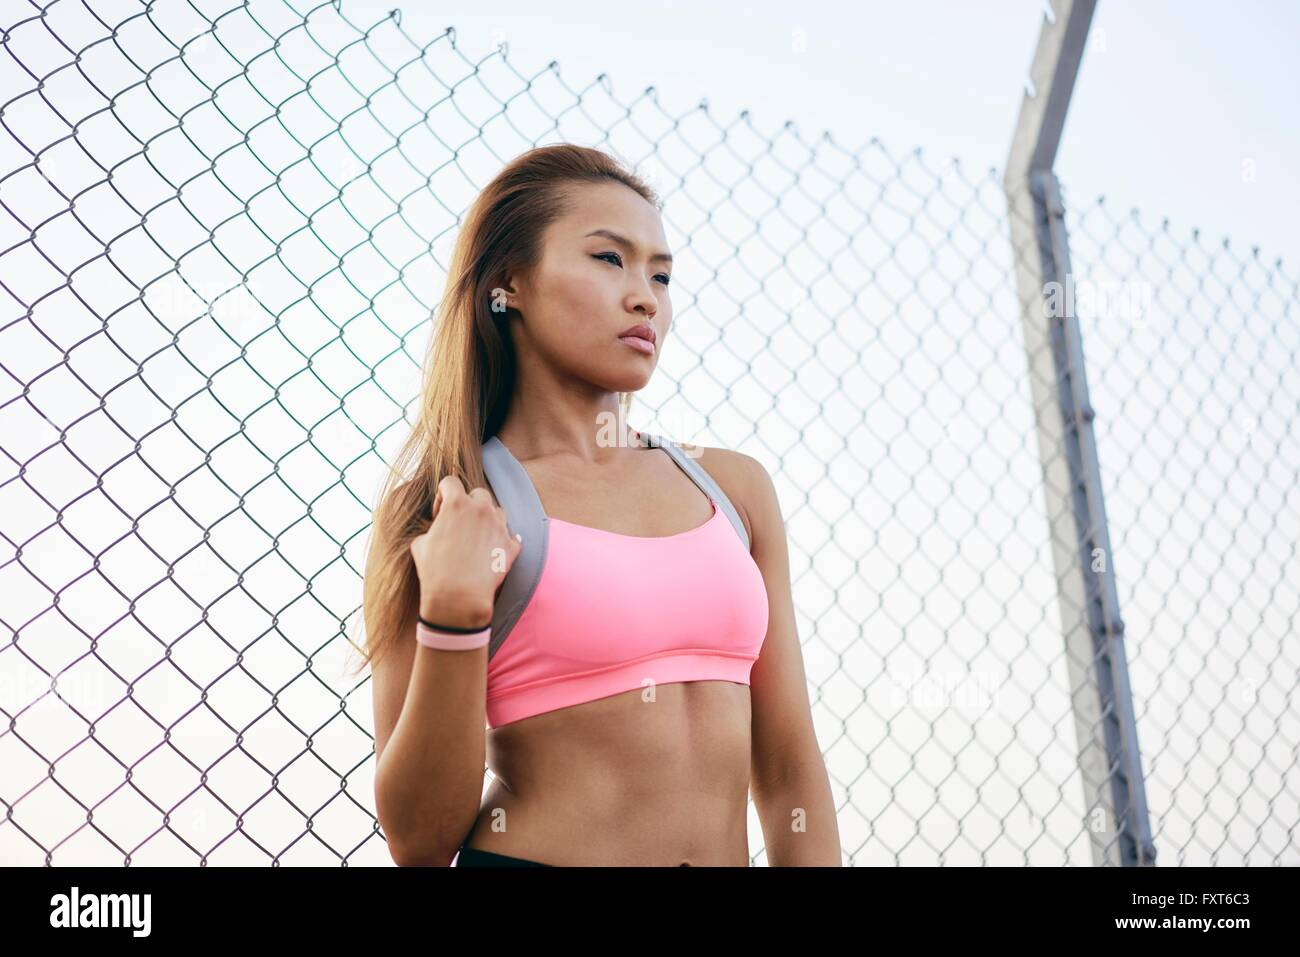 Young woman wearing crop top by wire fence - Stock Image